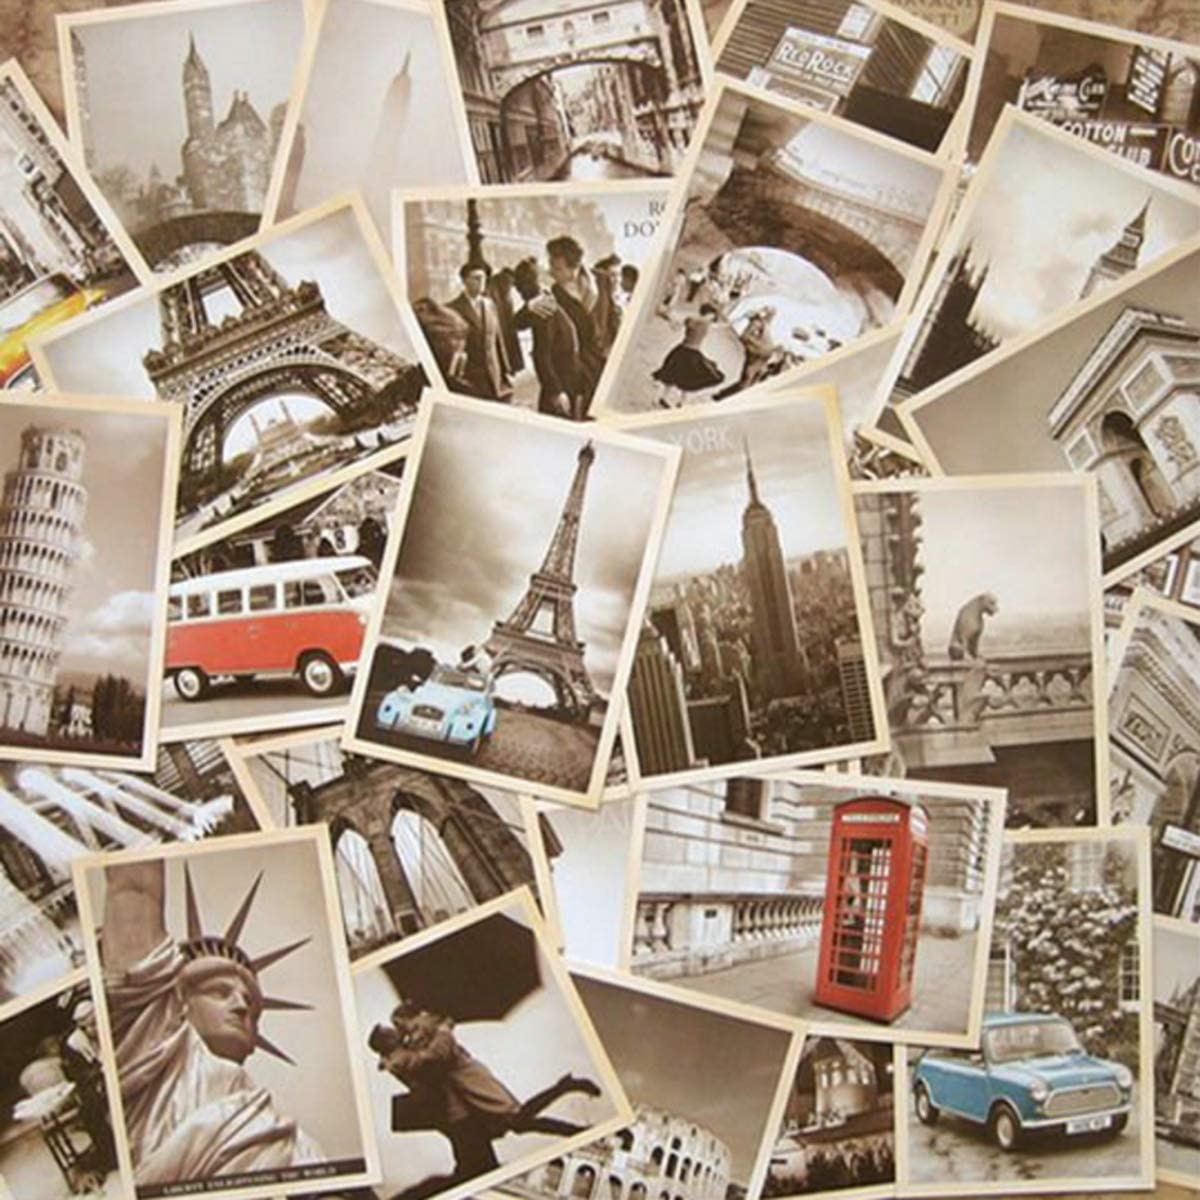 64 Pcs Vintage Retro Old Travel Postcards for Worth Collecting, Collectable Vintage Postcards Bulk Pack, 2 Set